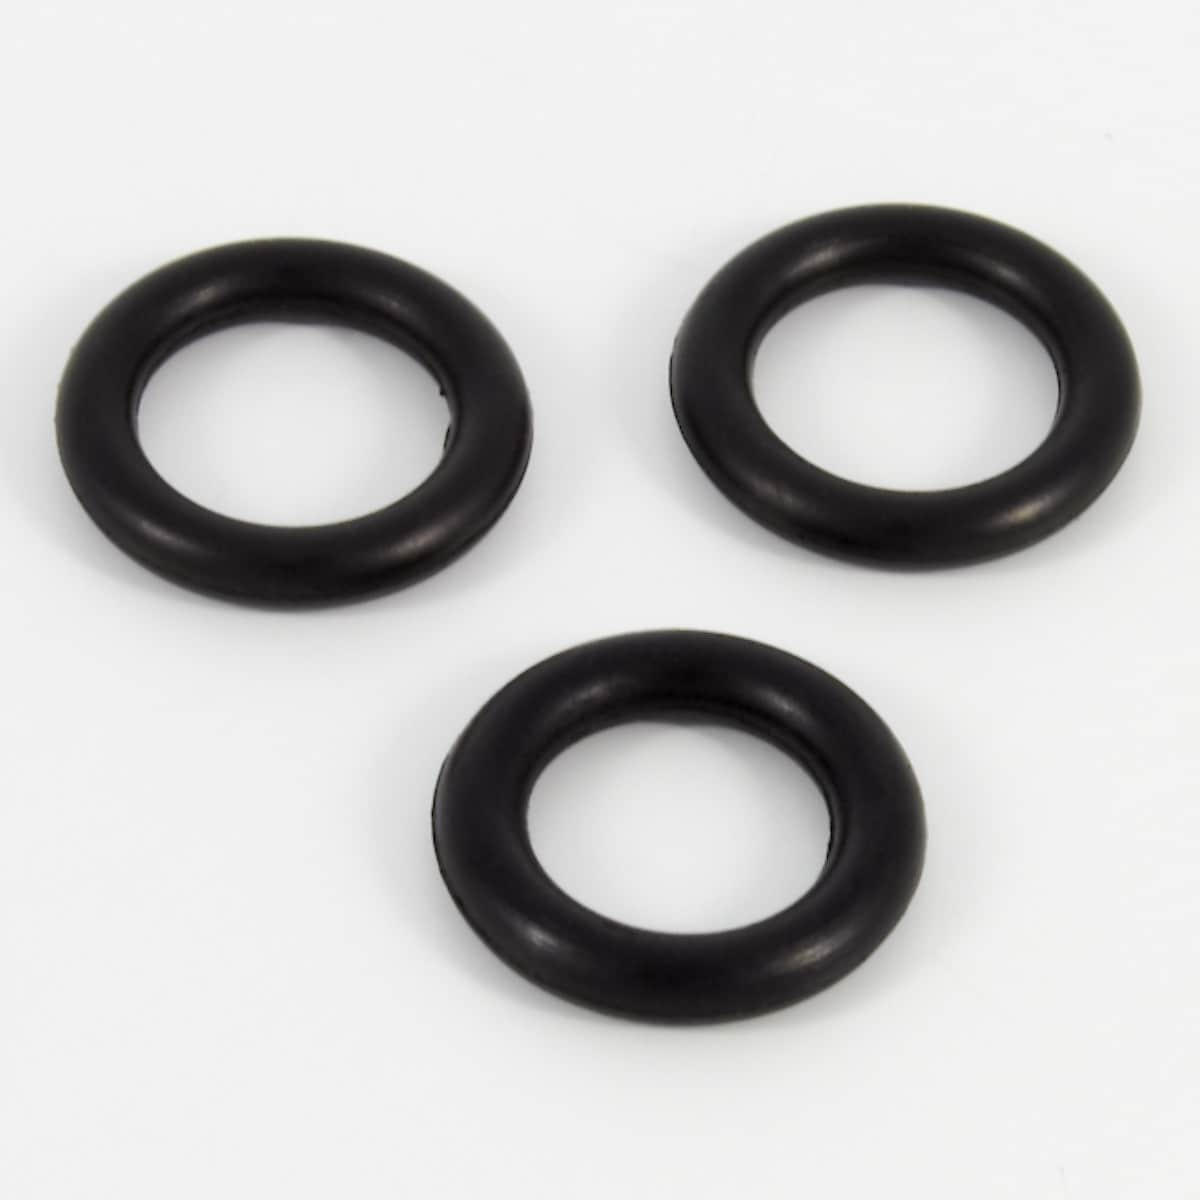 O-RING 9,3X2,4MM 3-PACK